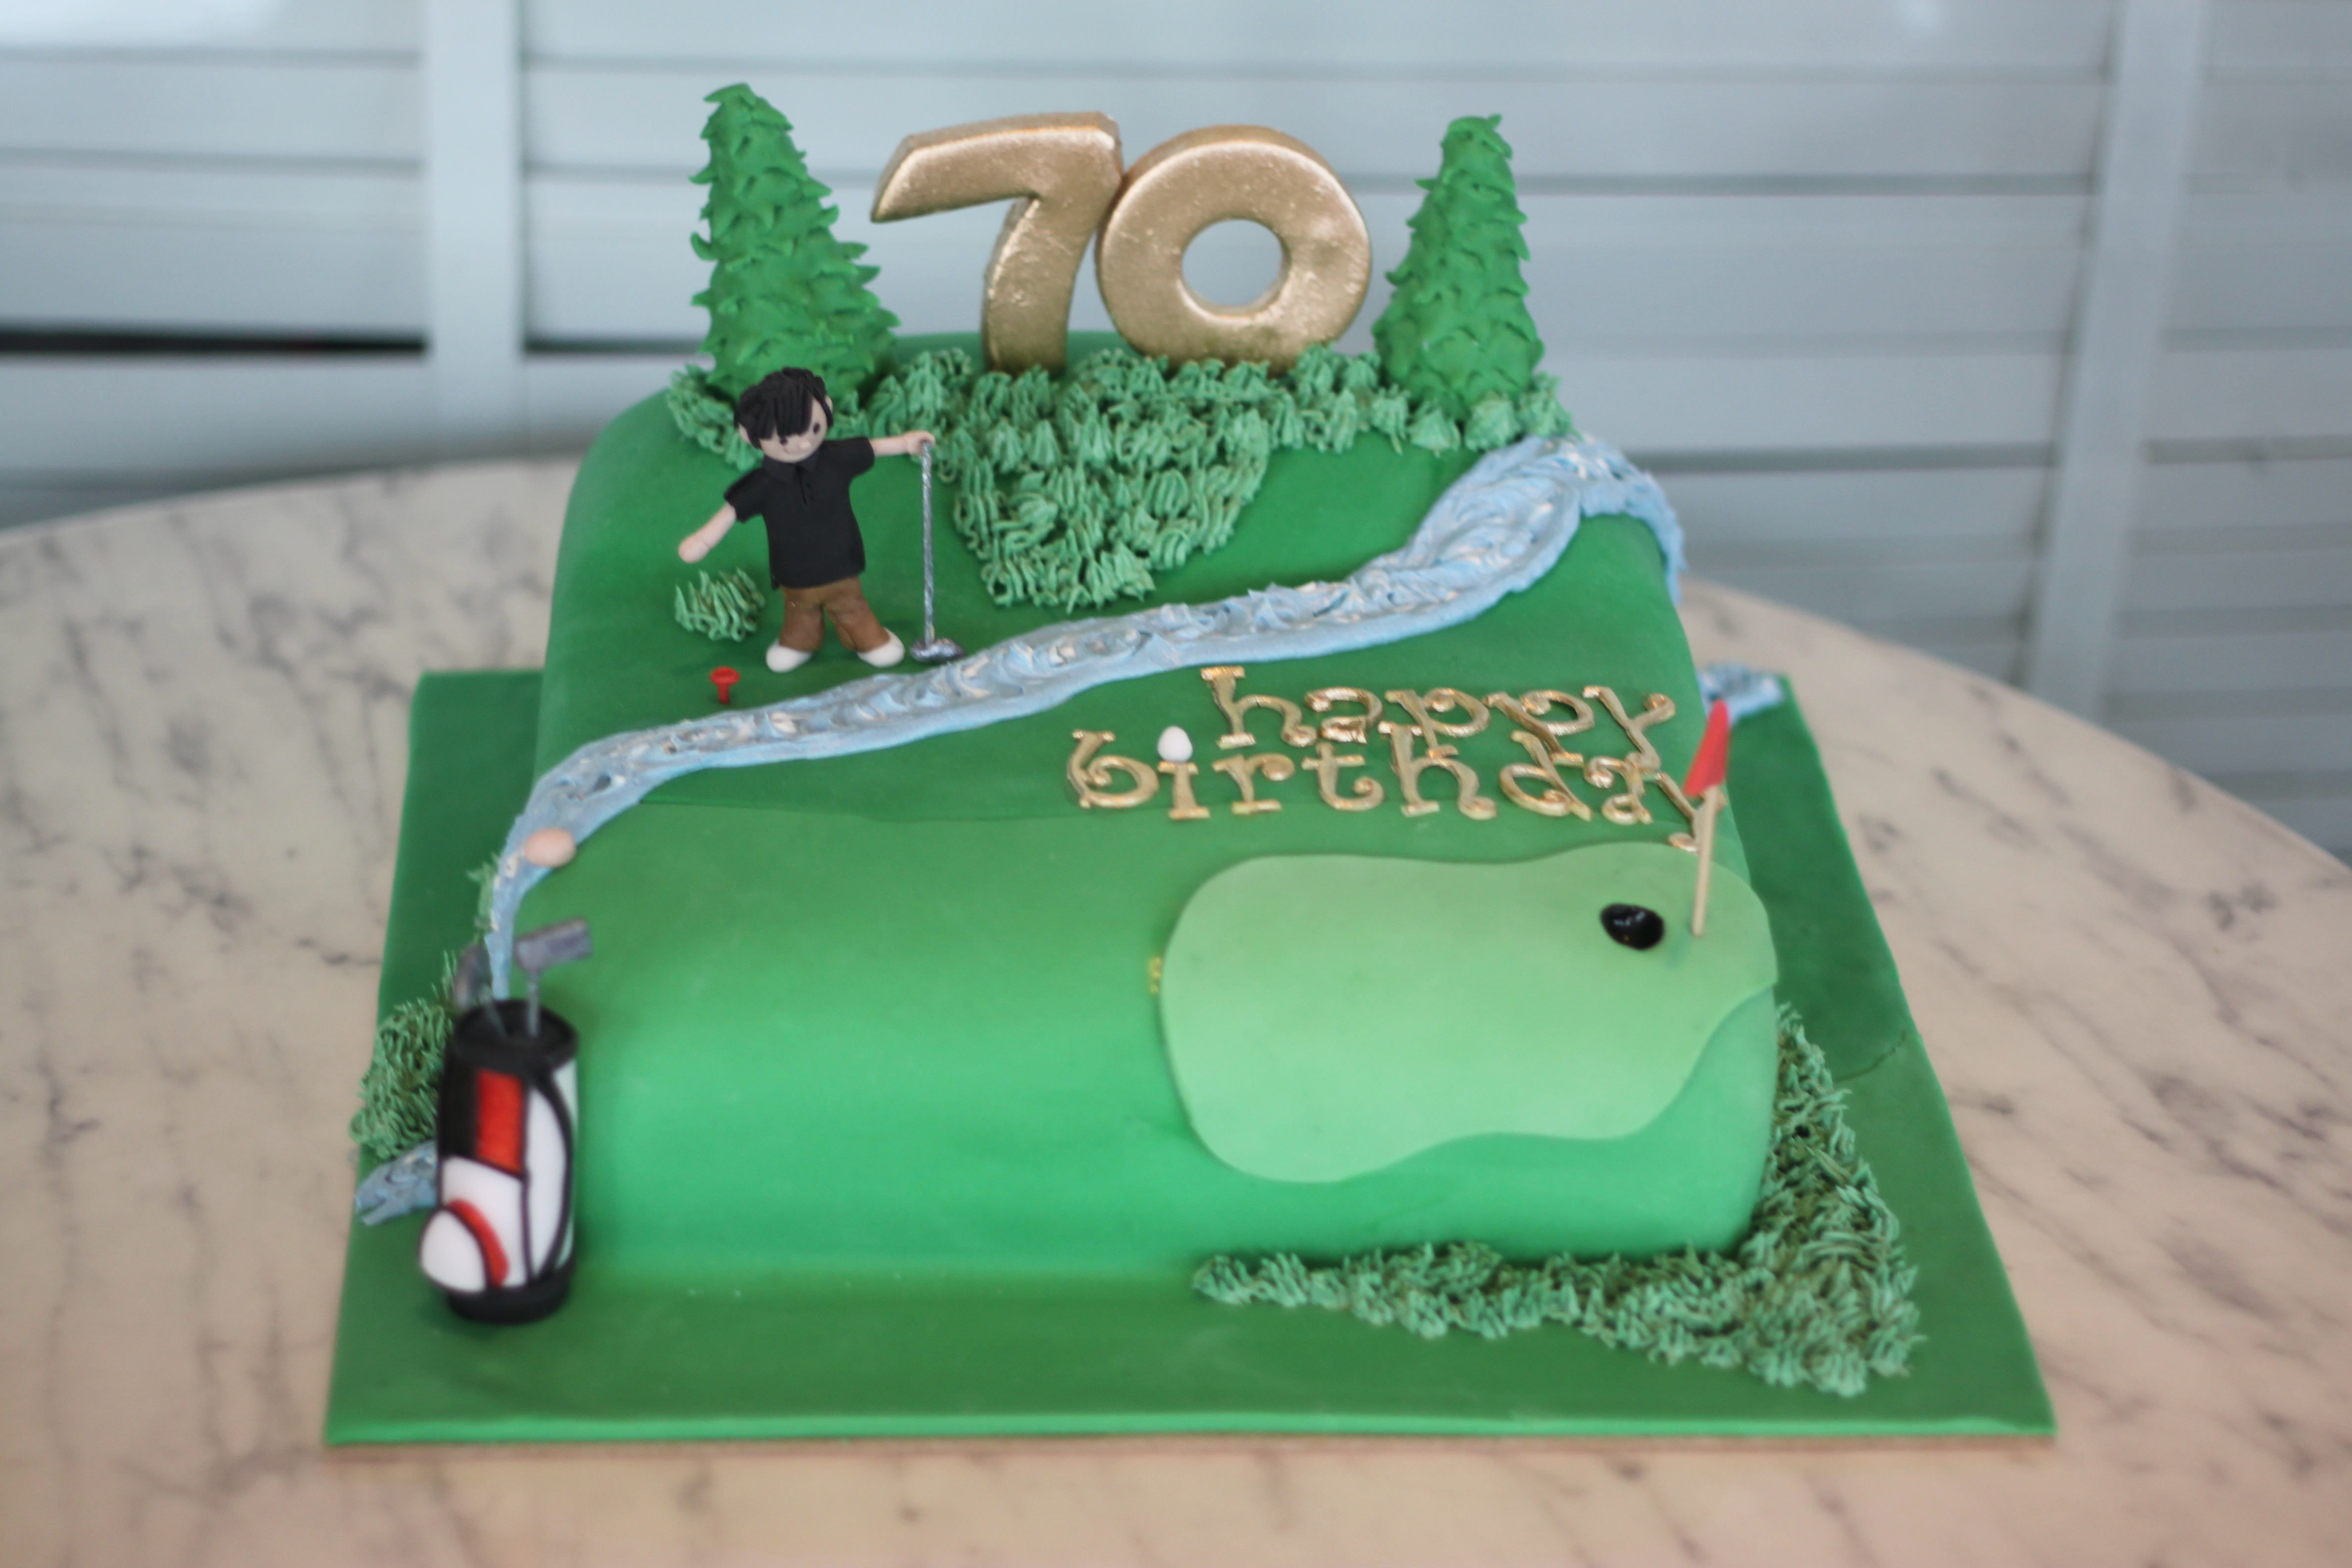 70Th Birthday Cakes for Men http://muffinsareuglycupcakes.wordpress.com/2011/01/04/hello-2011-hello-golf-cake/